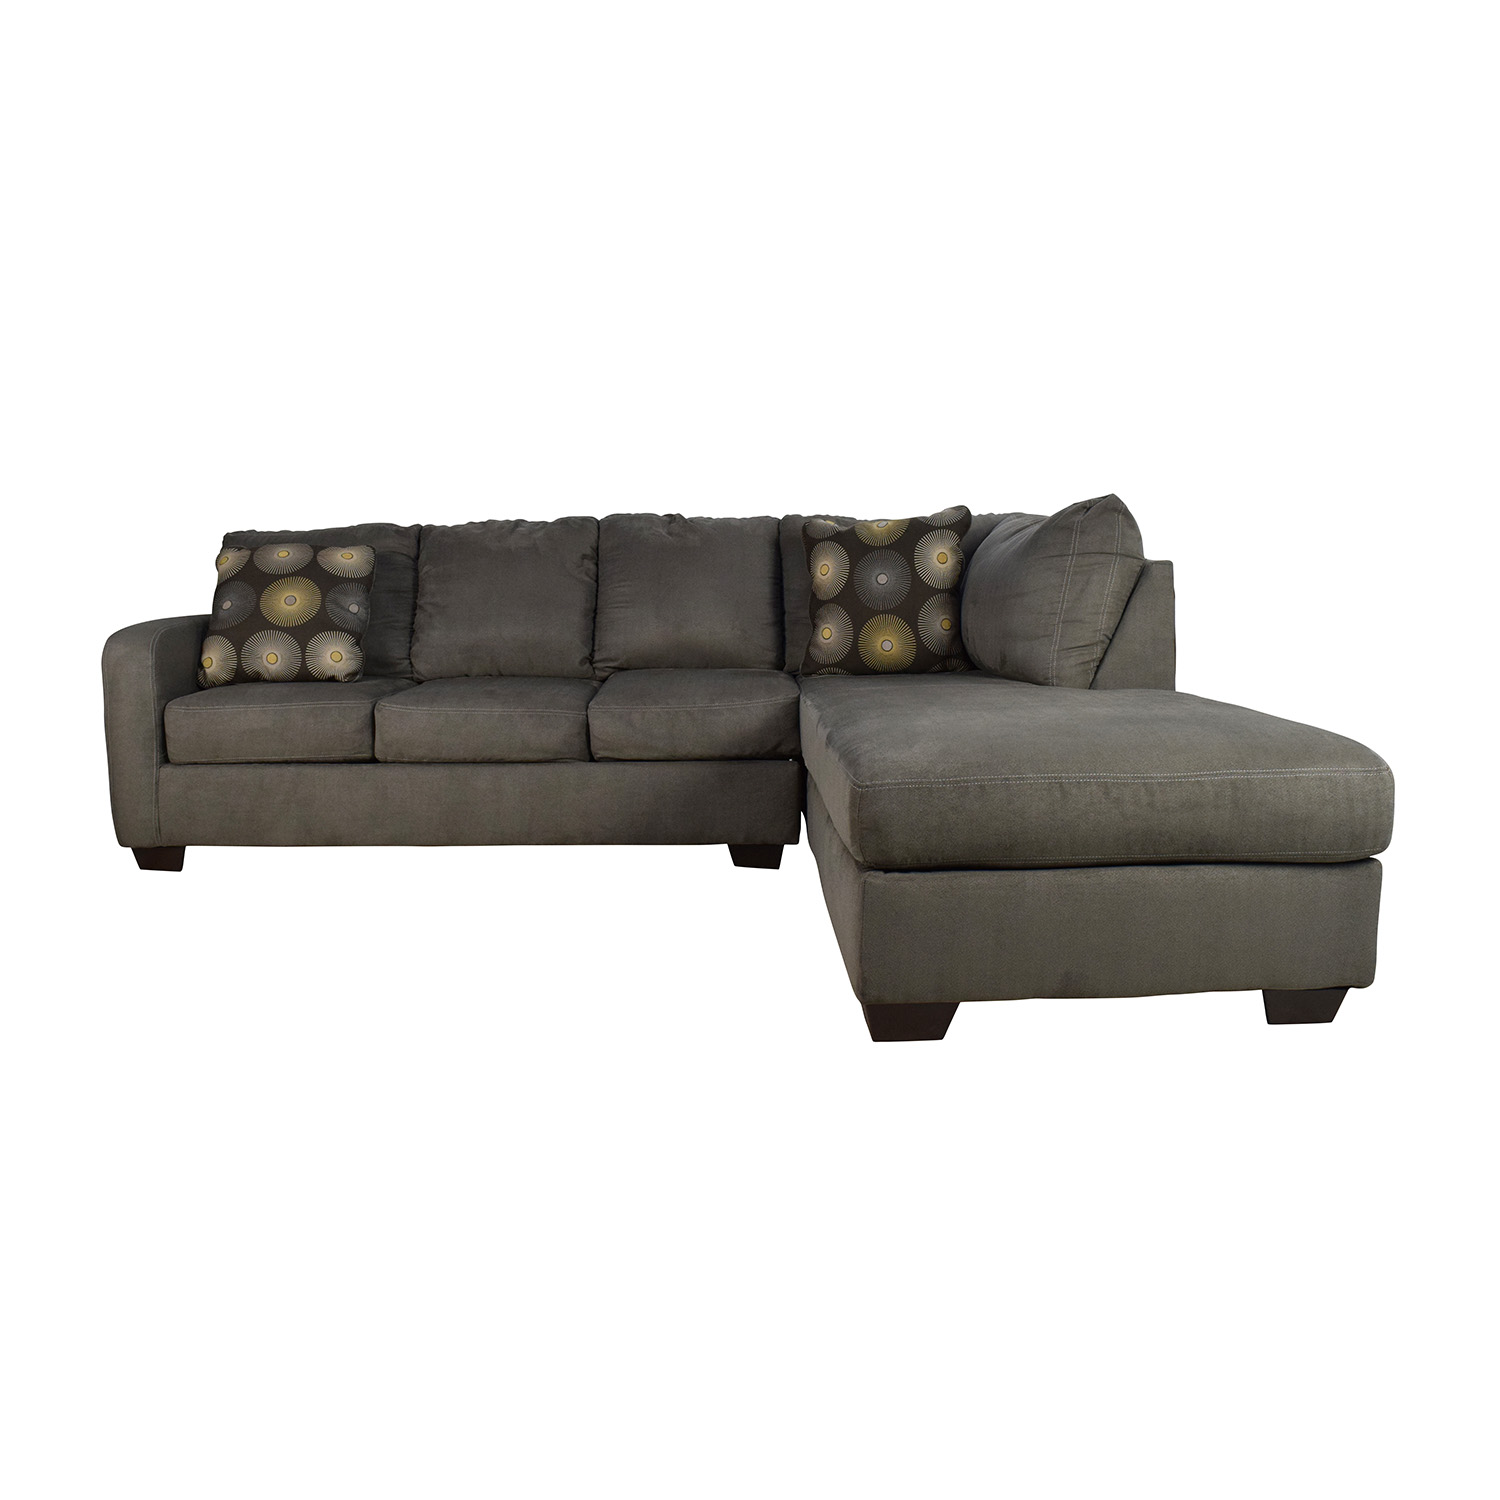 30 OFF Ashley Furniture Ashley Furniture Waverly Gray Sectional